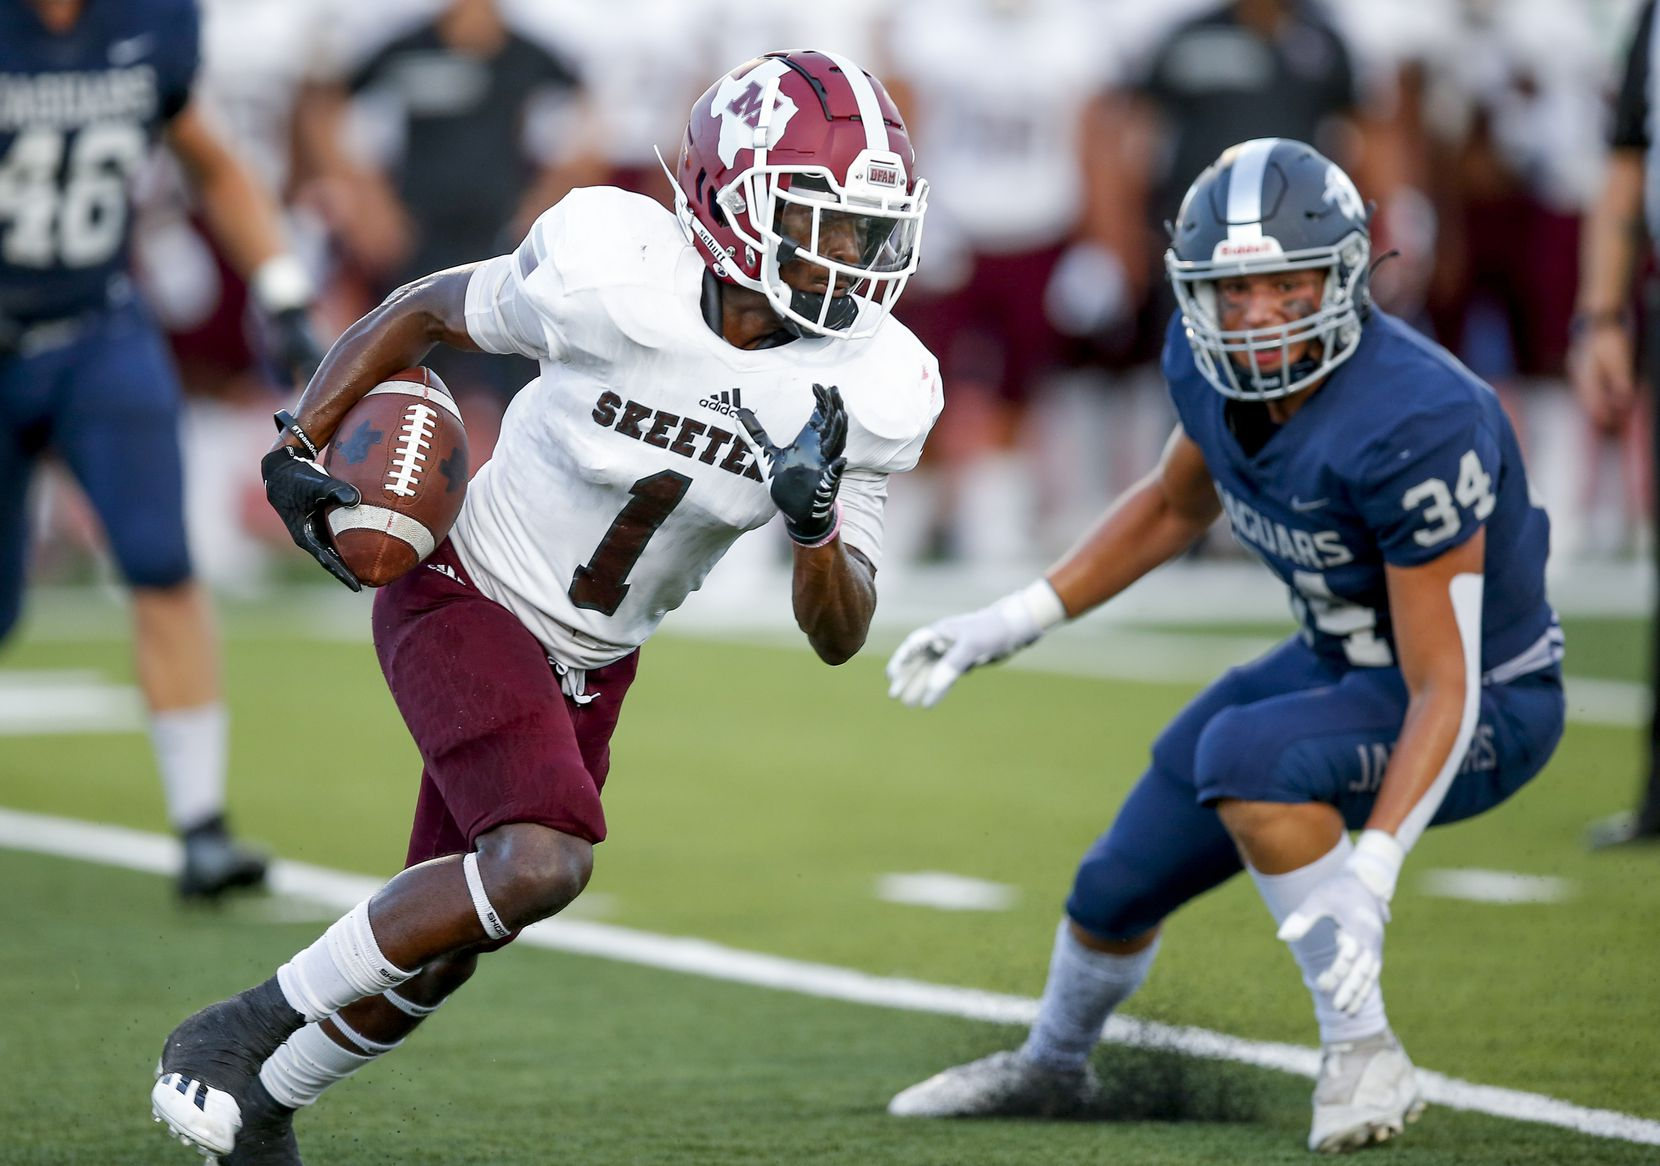 Mesquite senior wide receiver Justin White (1) looks for room against the Flower Mound defense during the first half of a high school football game at Flower Mound High School, Friday, August 27, 2021. (Brandon Wade/Special Contributor)